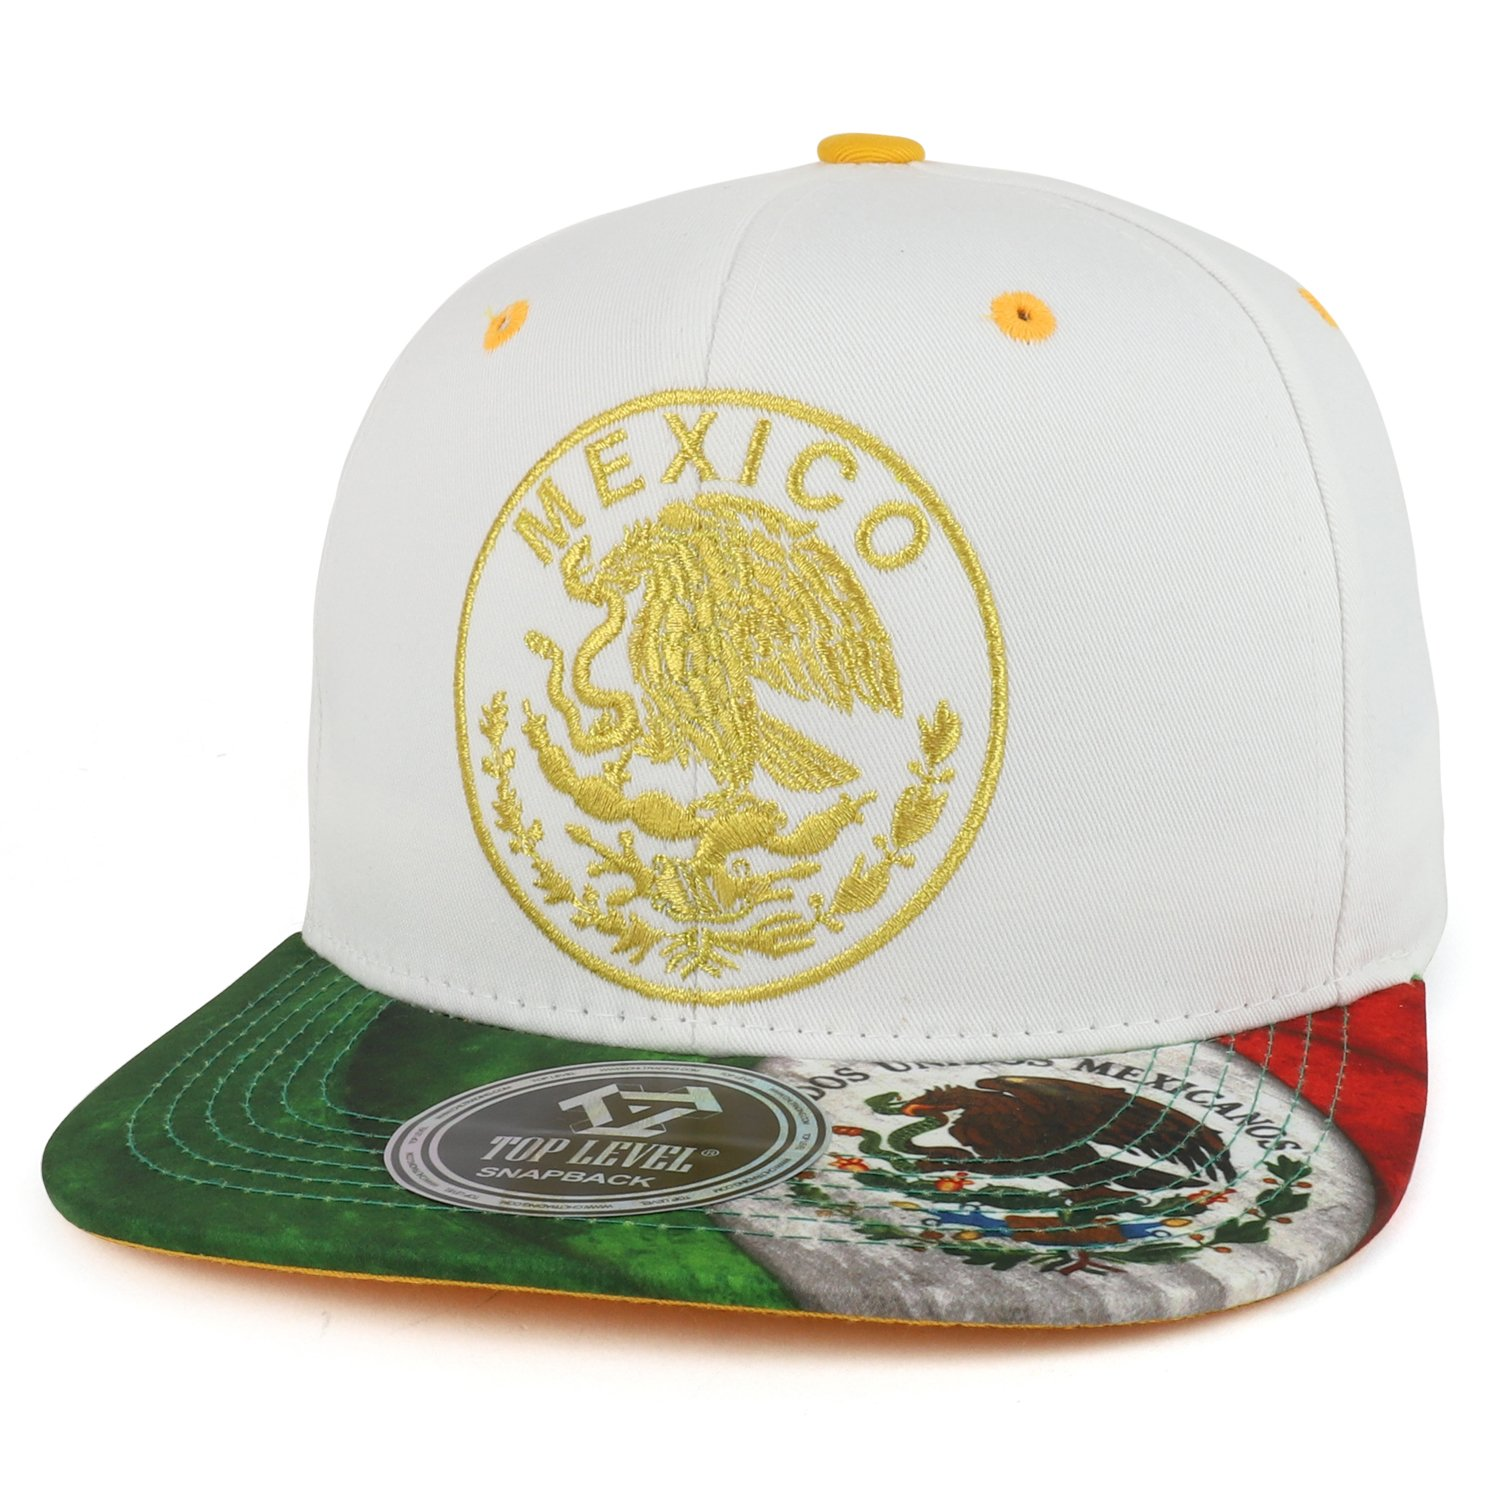 Trendy Apparel Shop Mexico Coat of Arms Golden Eagle Emblem Embroidered Snapback Cap - White